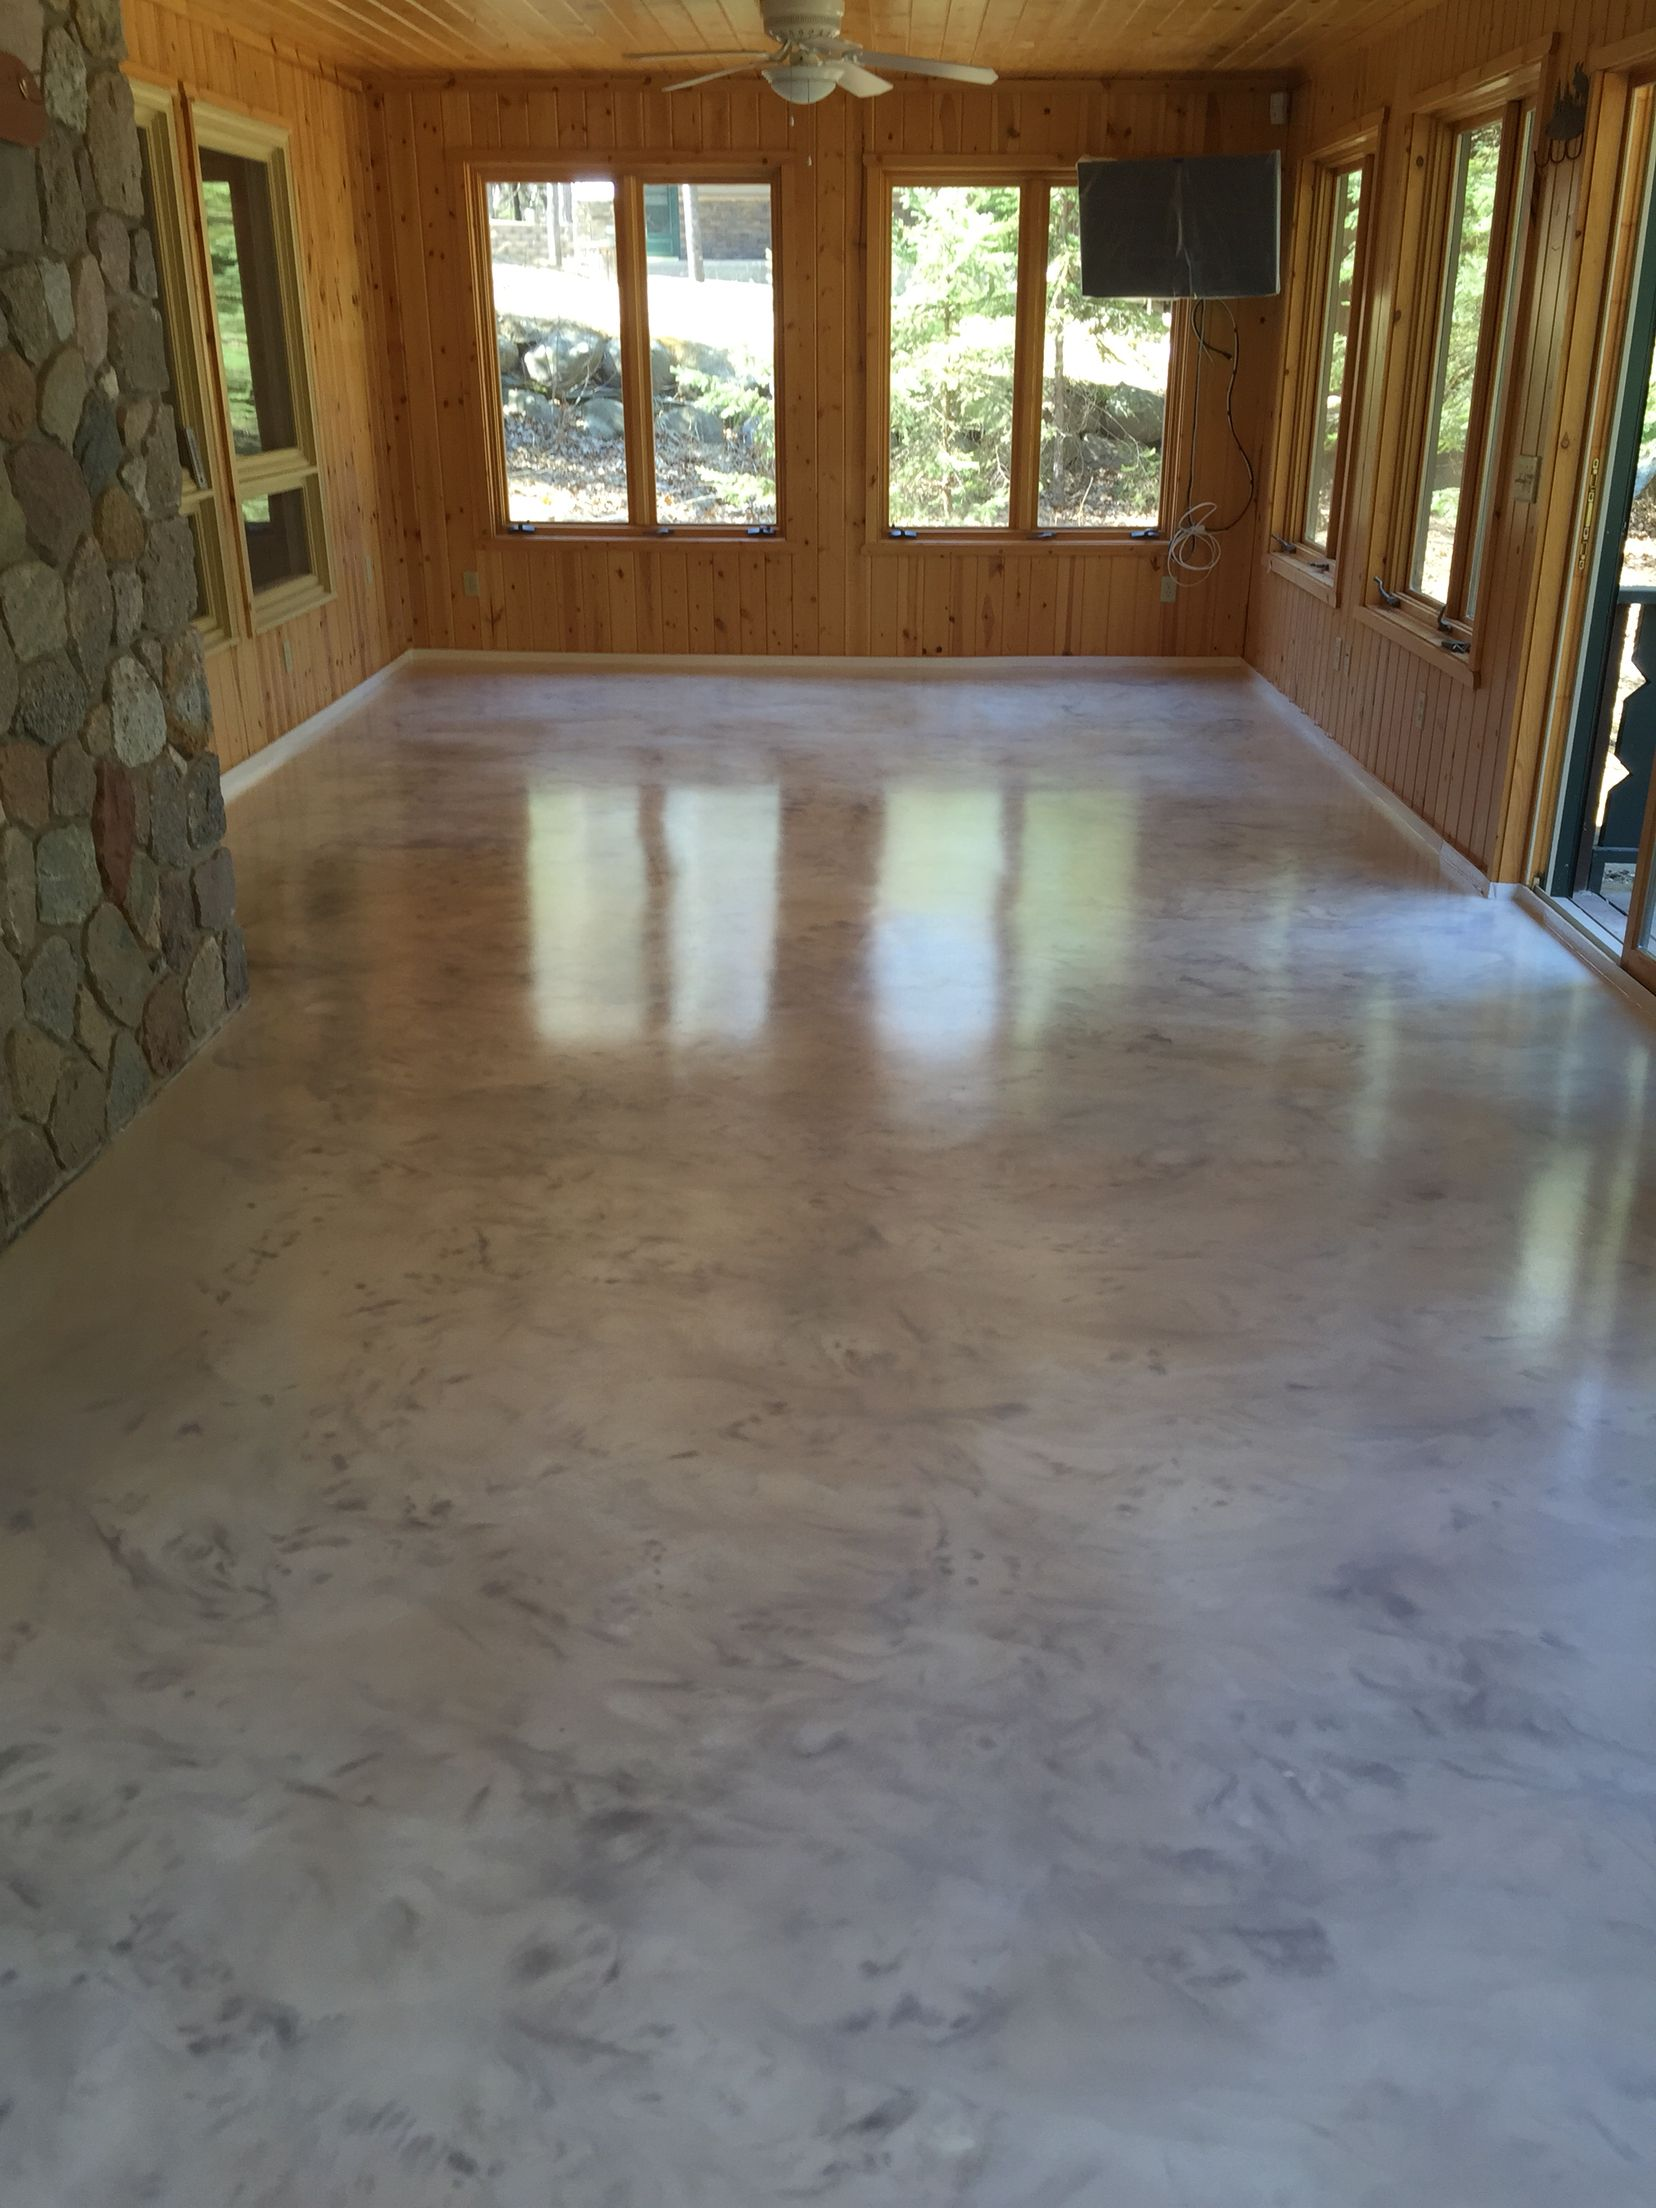 Metallic epoxy floor coating with satin non slip finish by Sierra ...